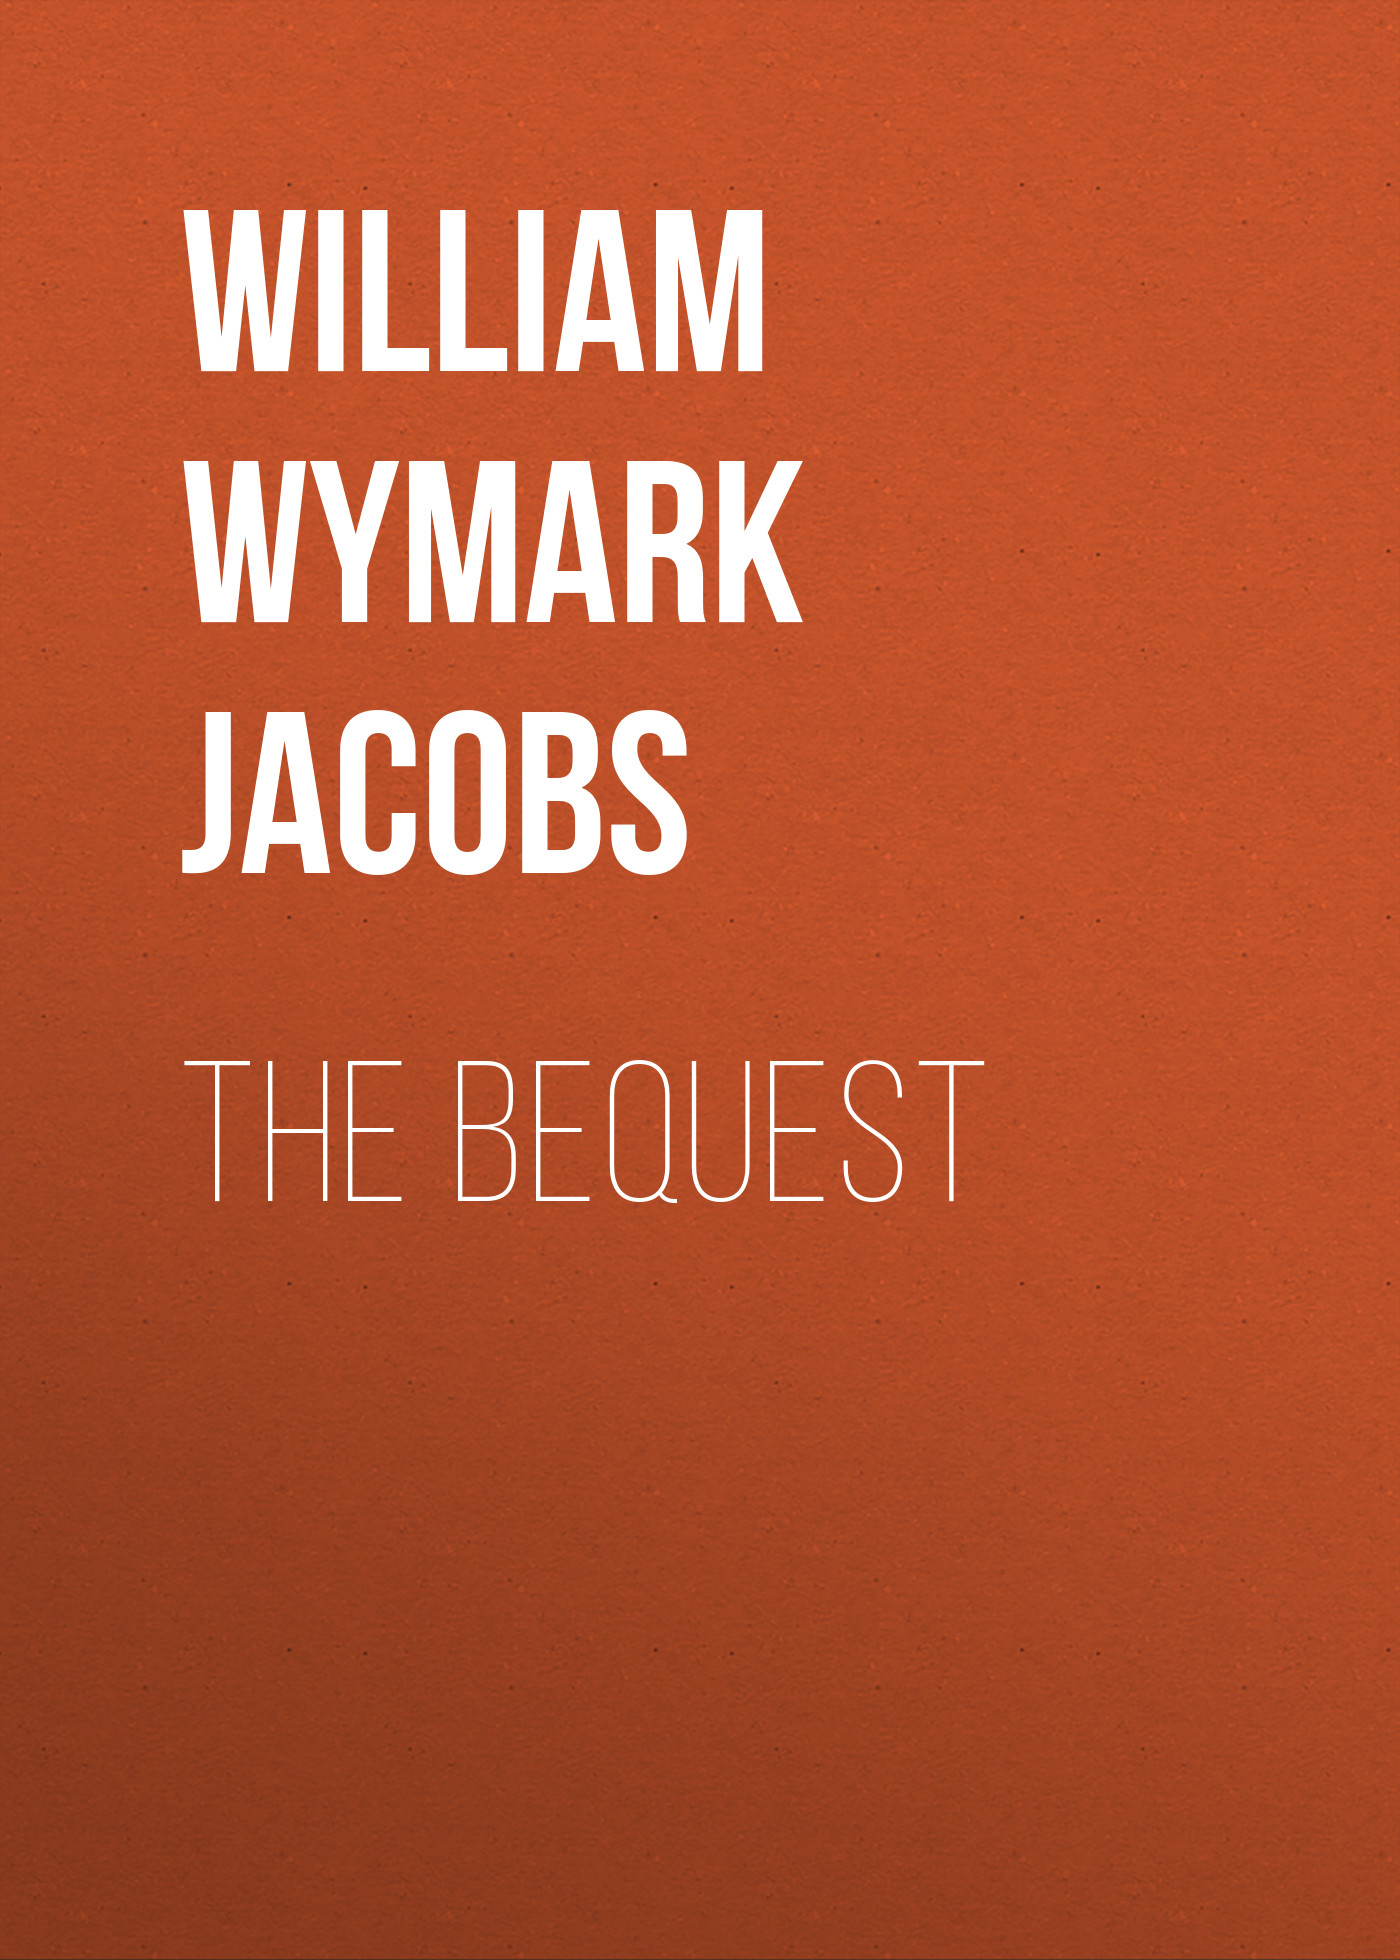 William Wymark Jacobs The Bequest susan meier the baby bequest